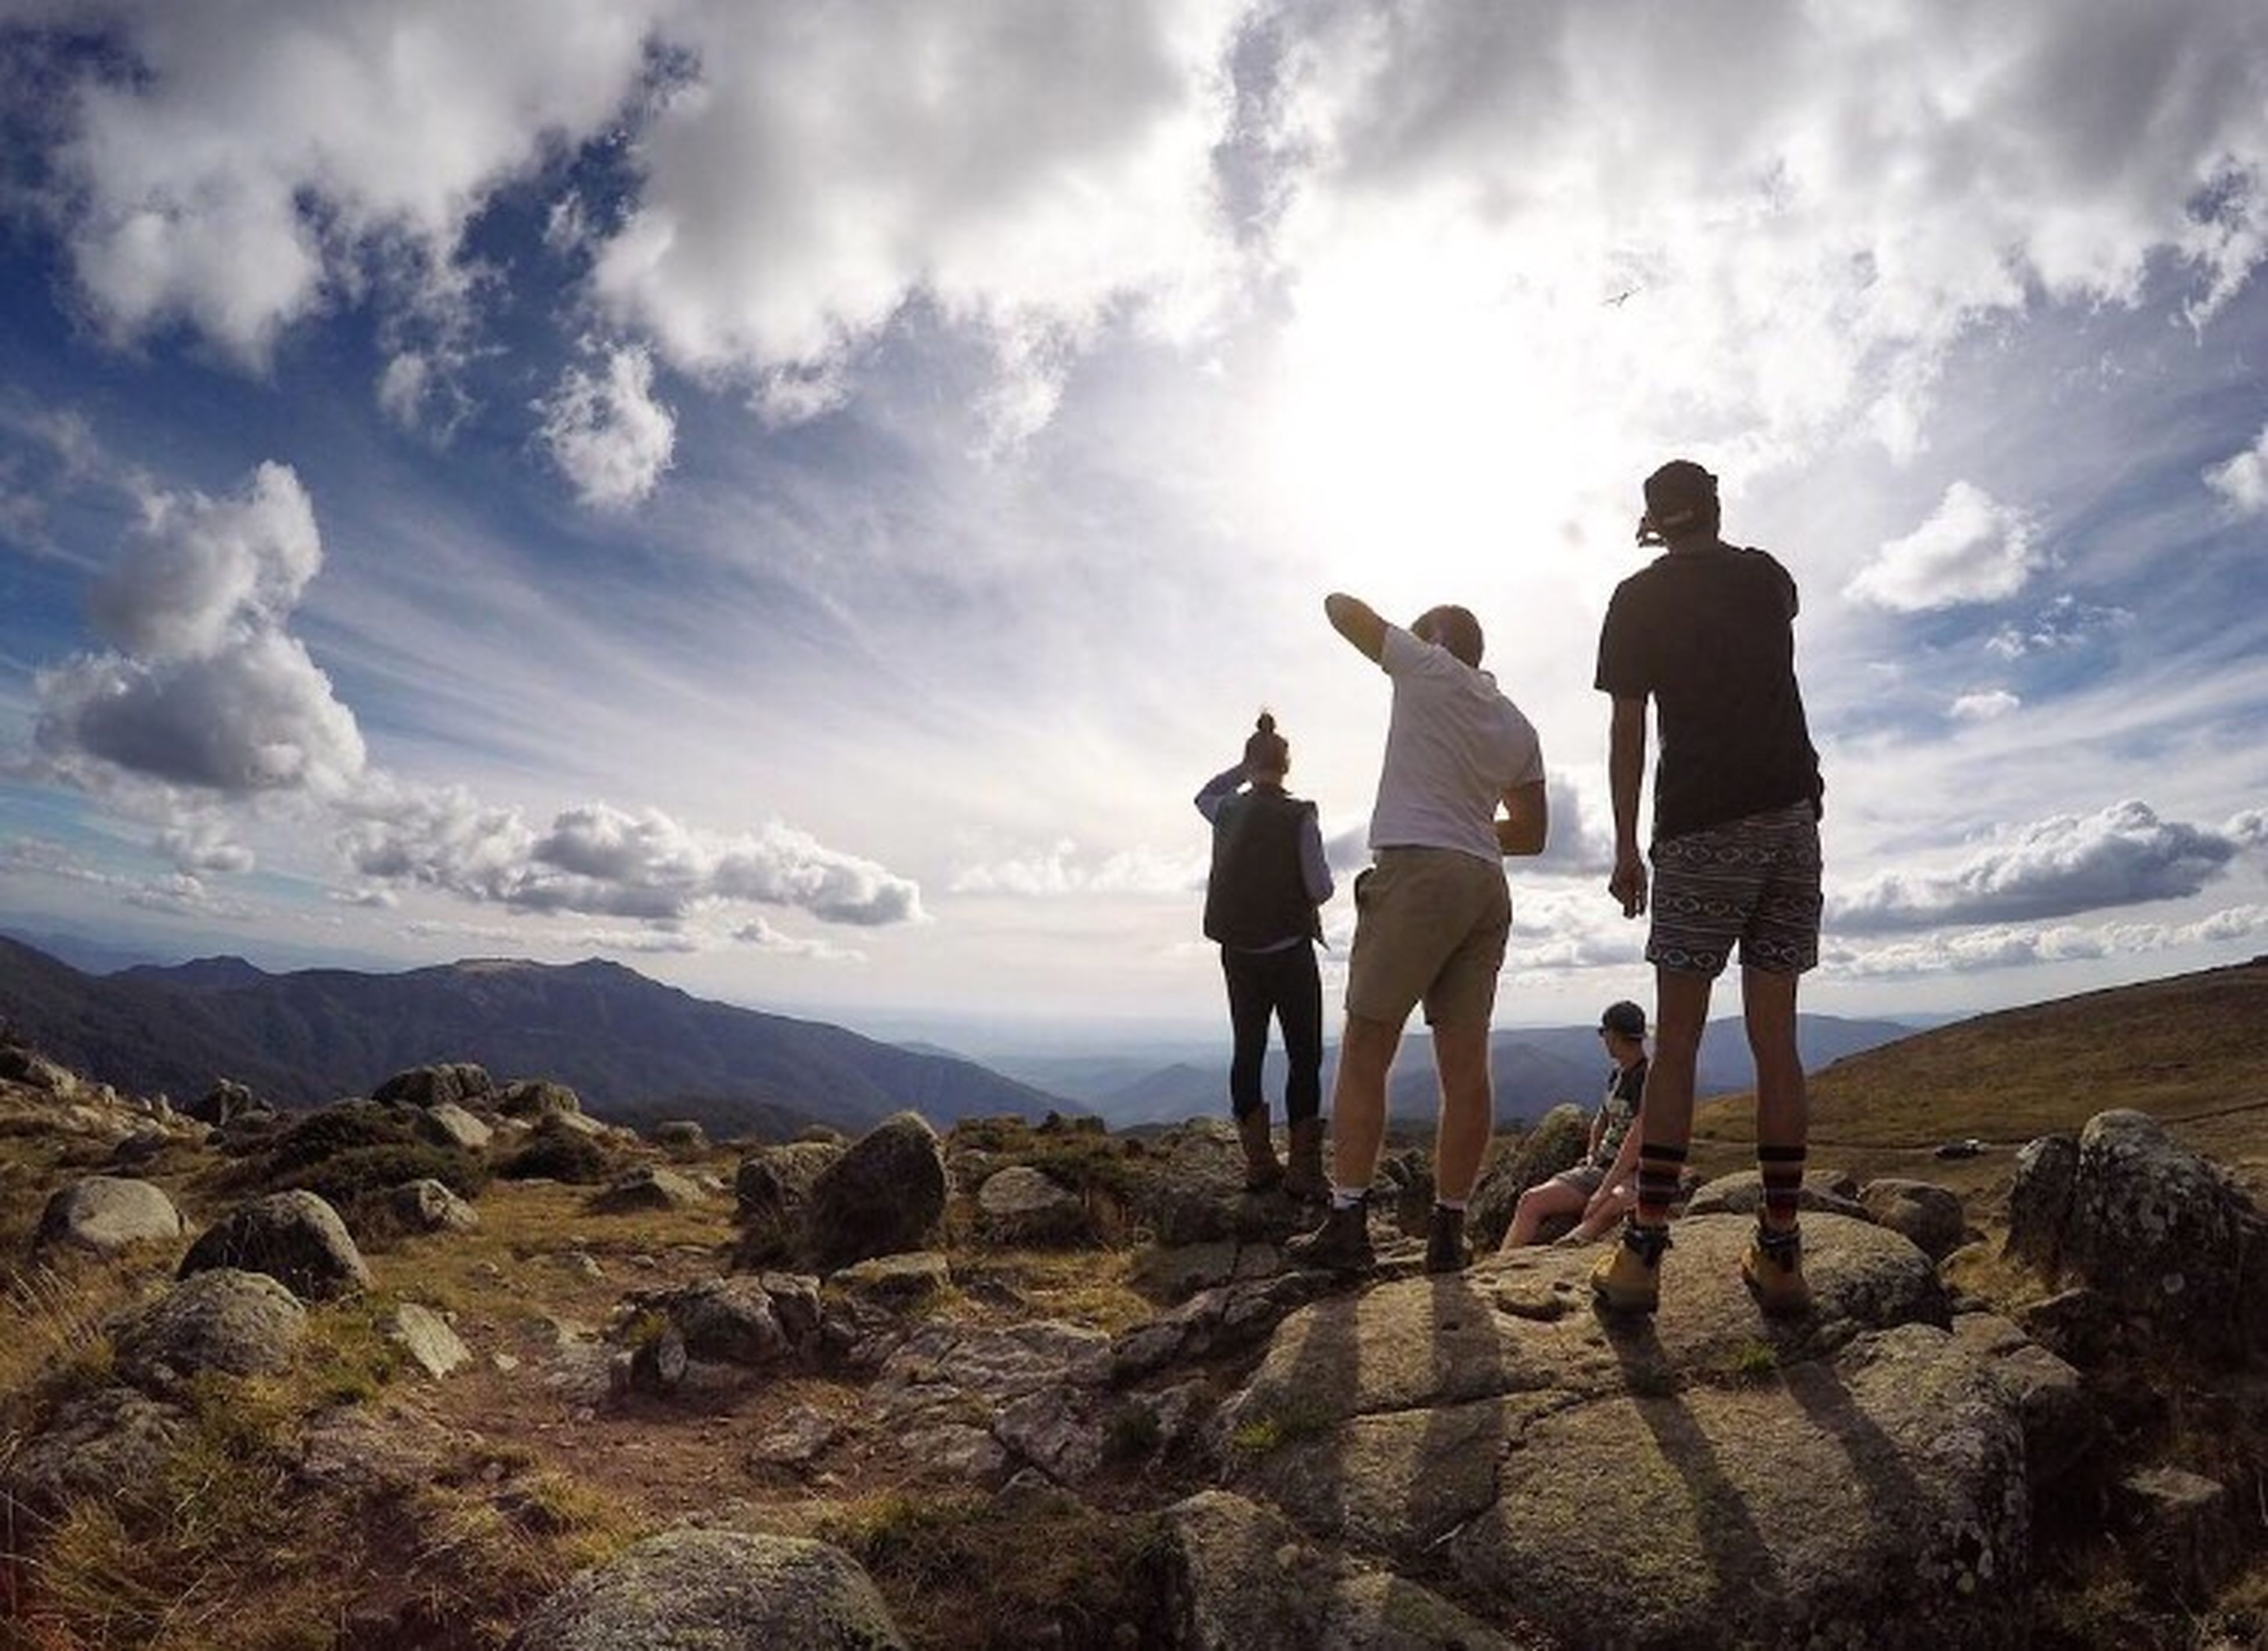 sky, men, lifestyles, rock - object, leisure activity, cloud - sky, togetherness, standing, full length, person, nature, landscape, scenics, rear view, tranquility, beauty in nature, rock formation, tranquil scene, mountain